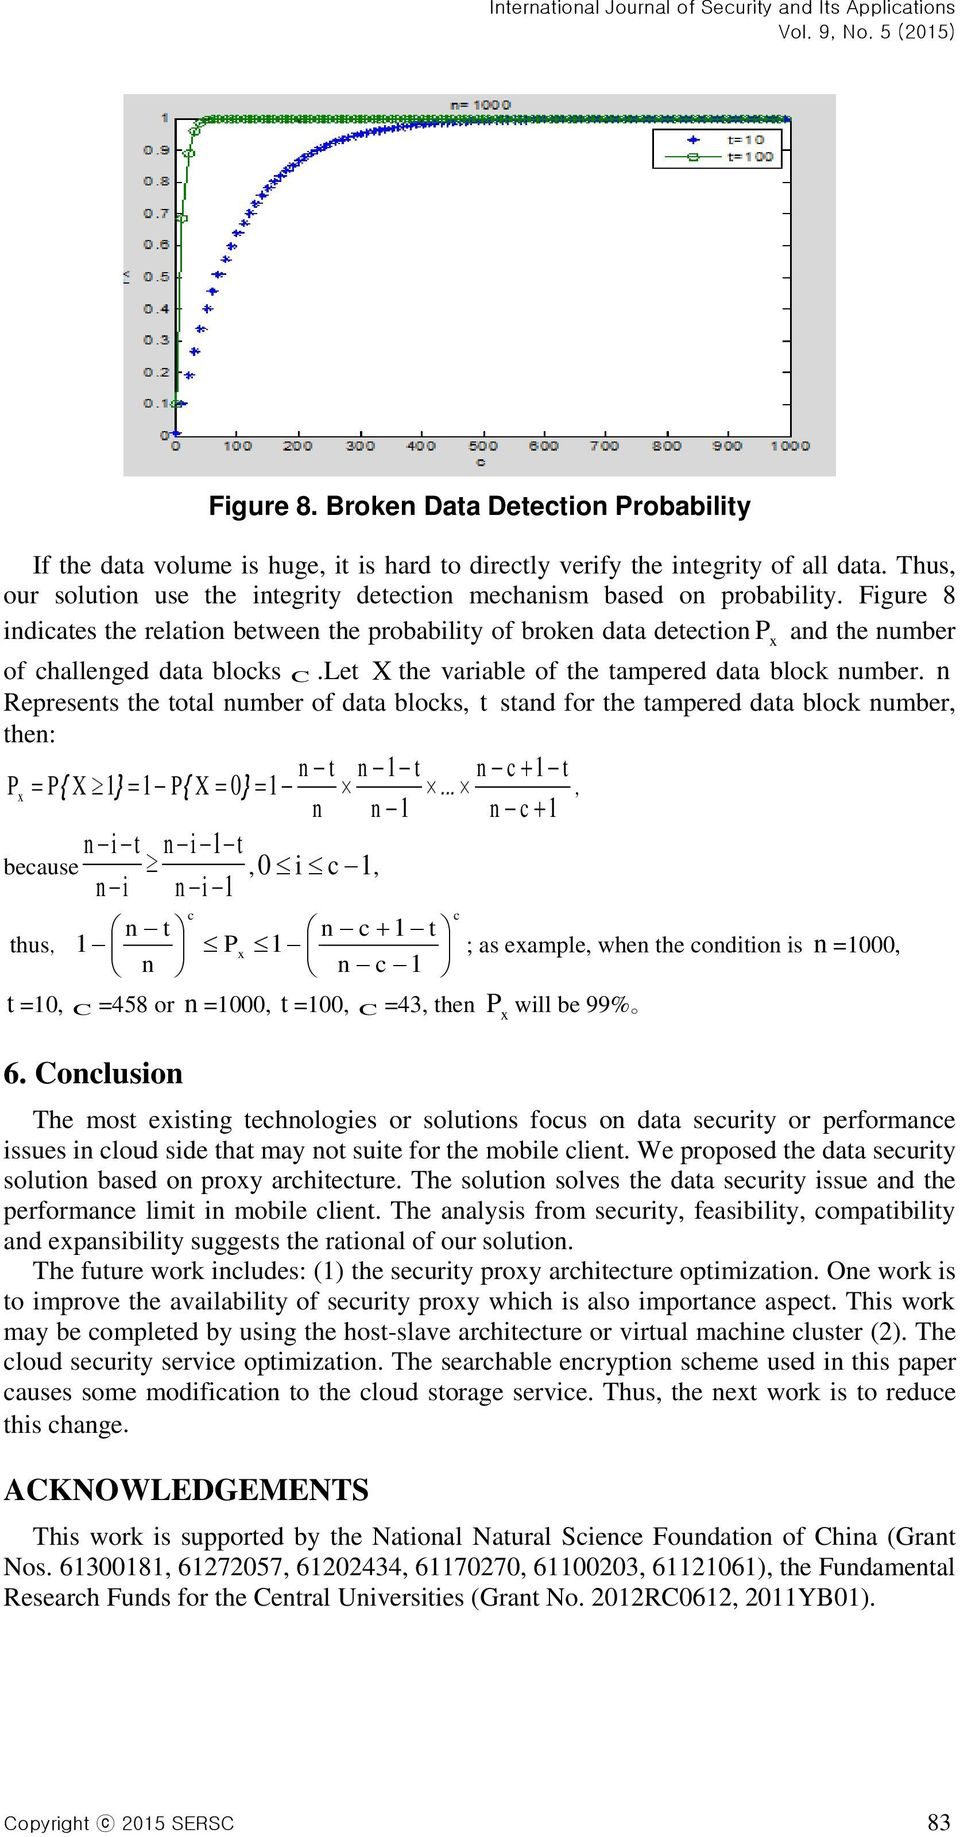 Figure 8 indicates the relation between the probability of broken data detection P x and the number of challenged data blocks C.Let X the variable of the tampered data block number.